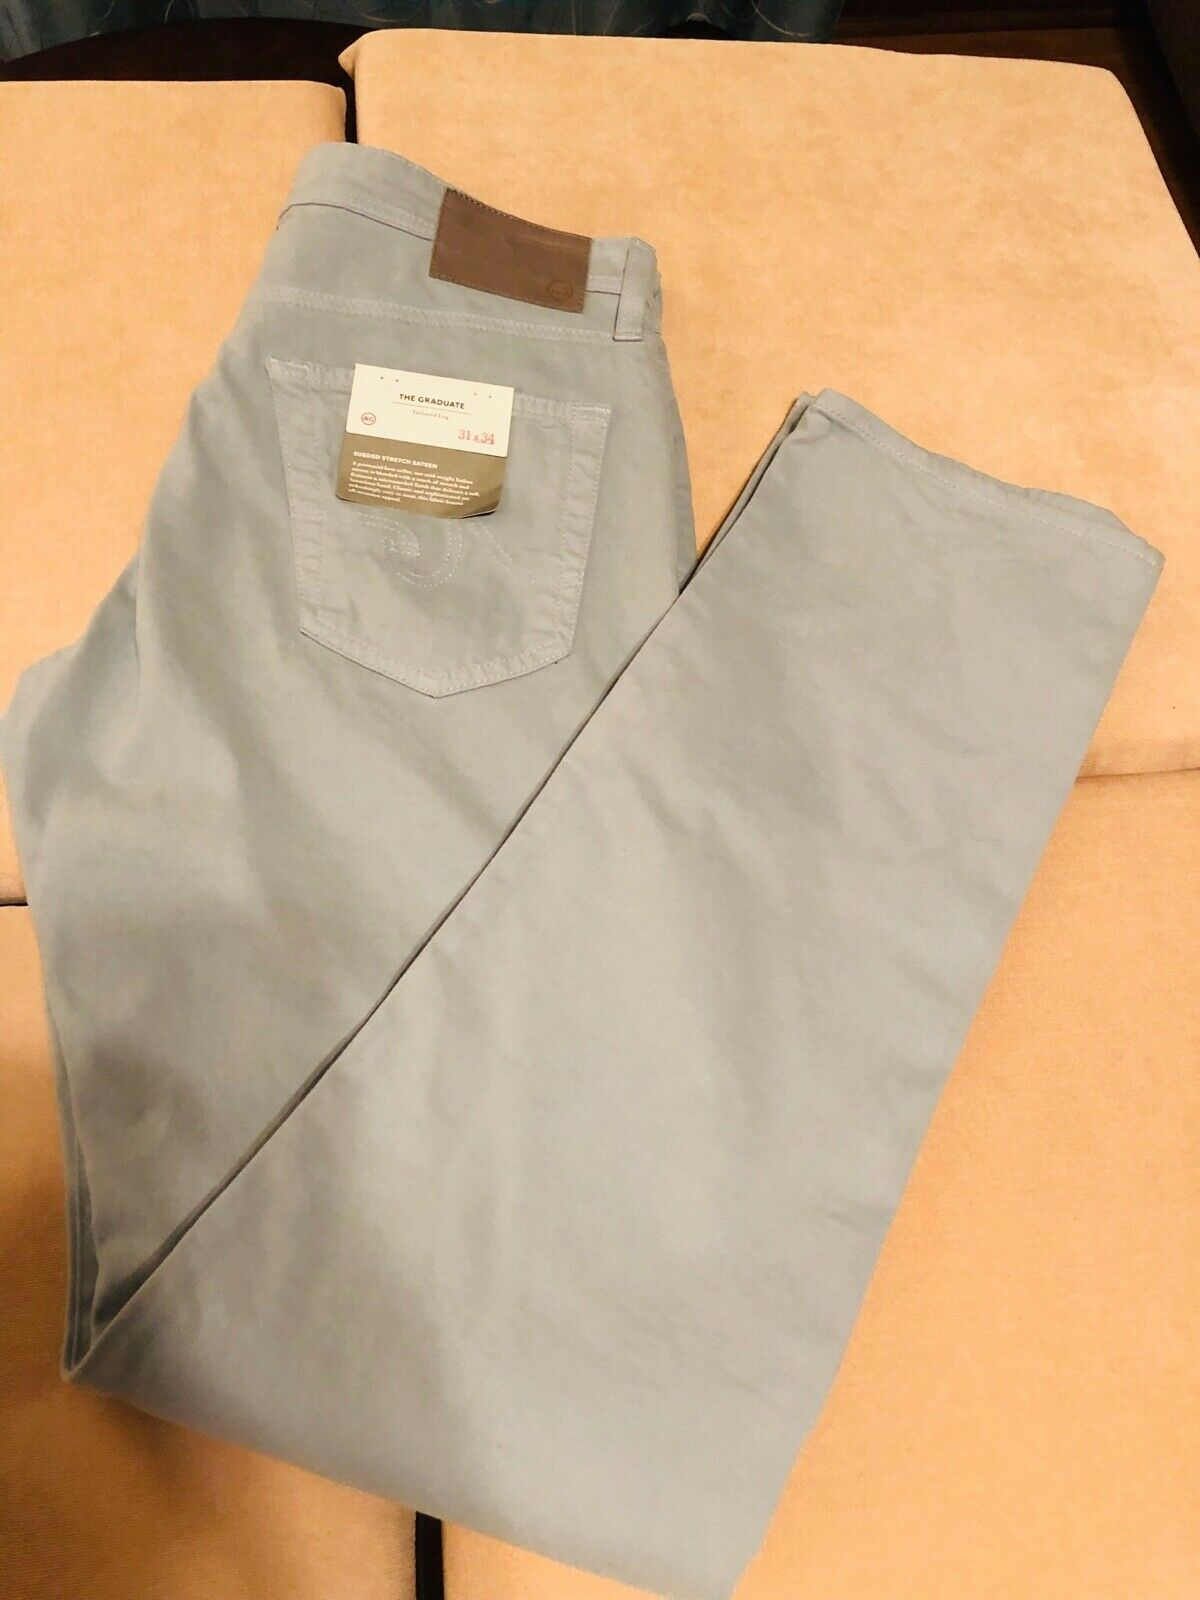 AG The Graduate Men's Jeans with sueded stretch sateen in light green mint 31x34